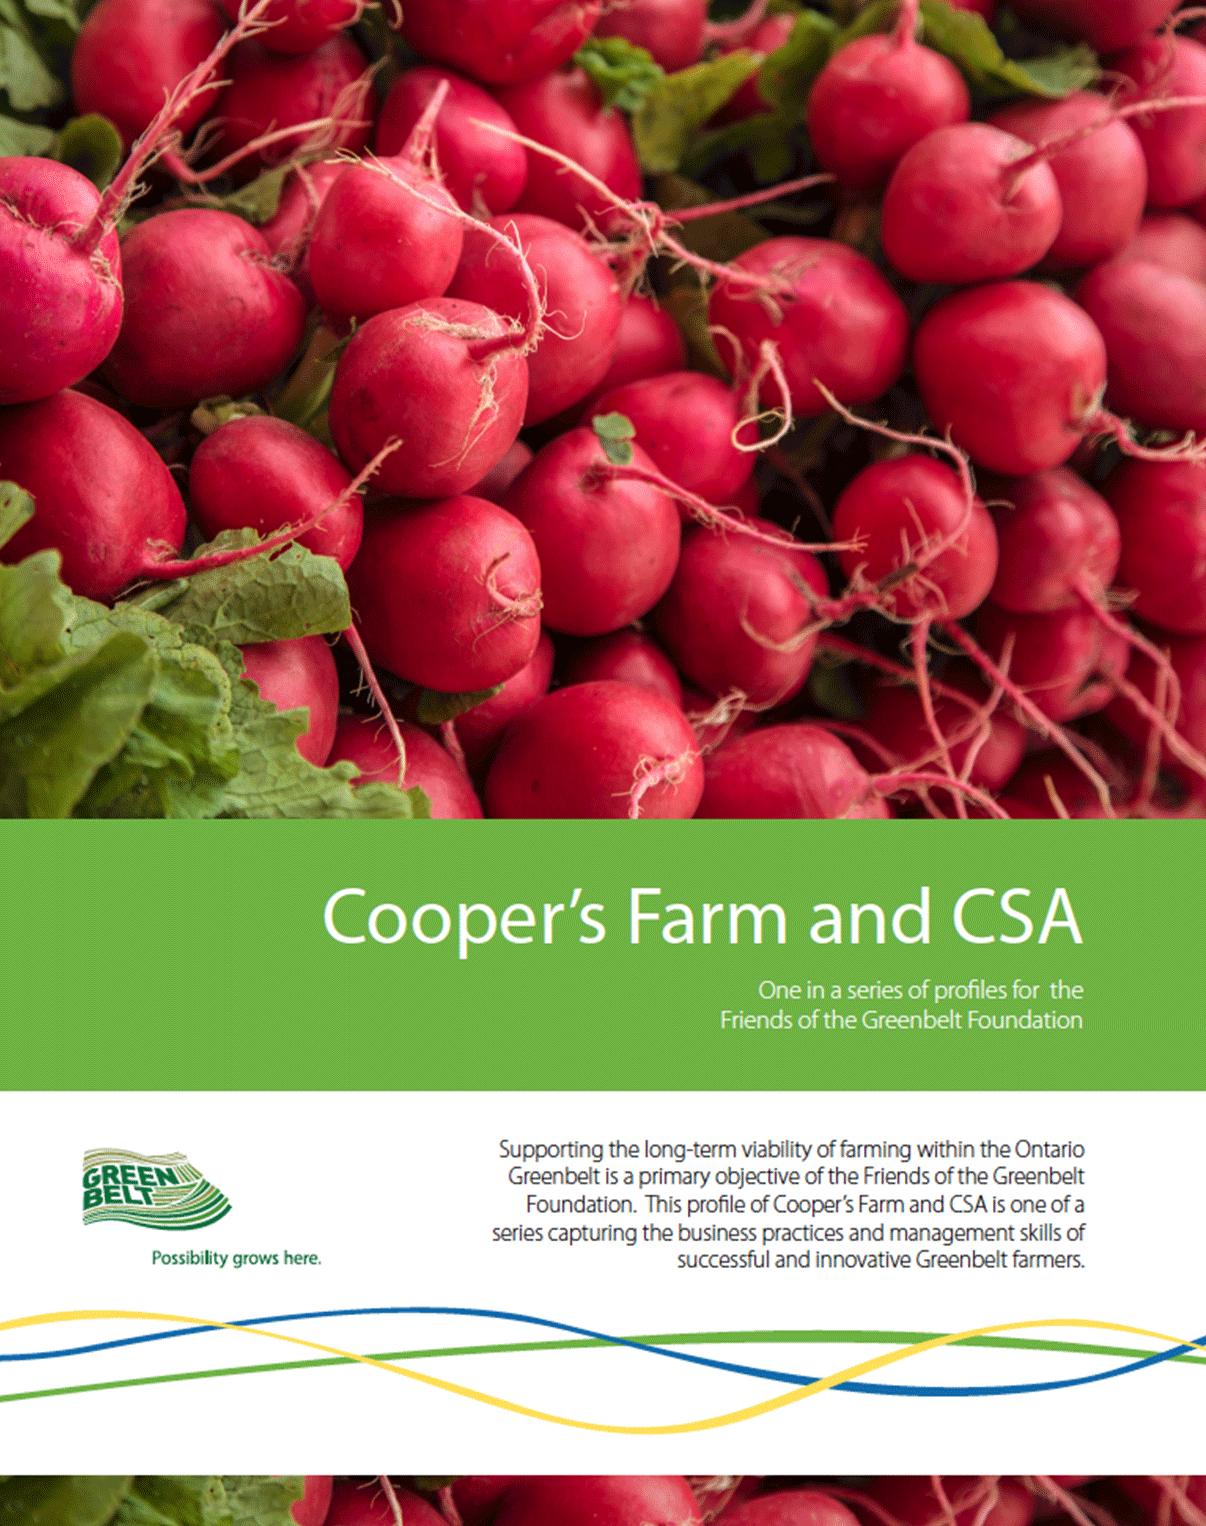 Coppersfarm-cover-2.png